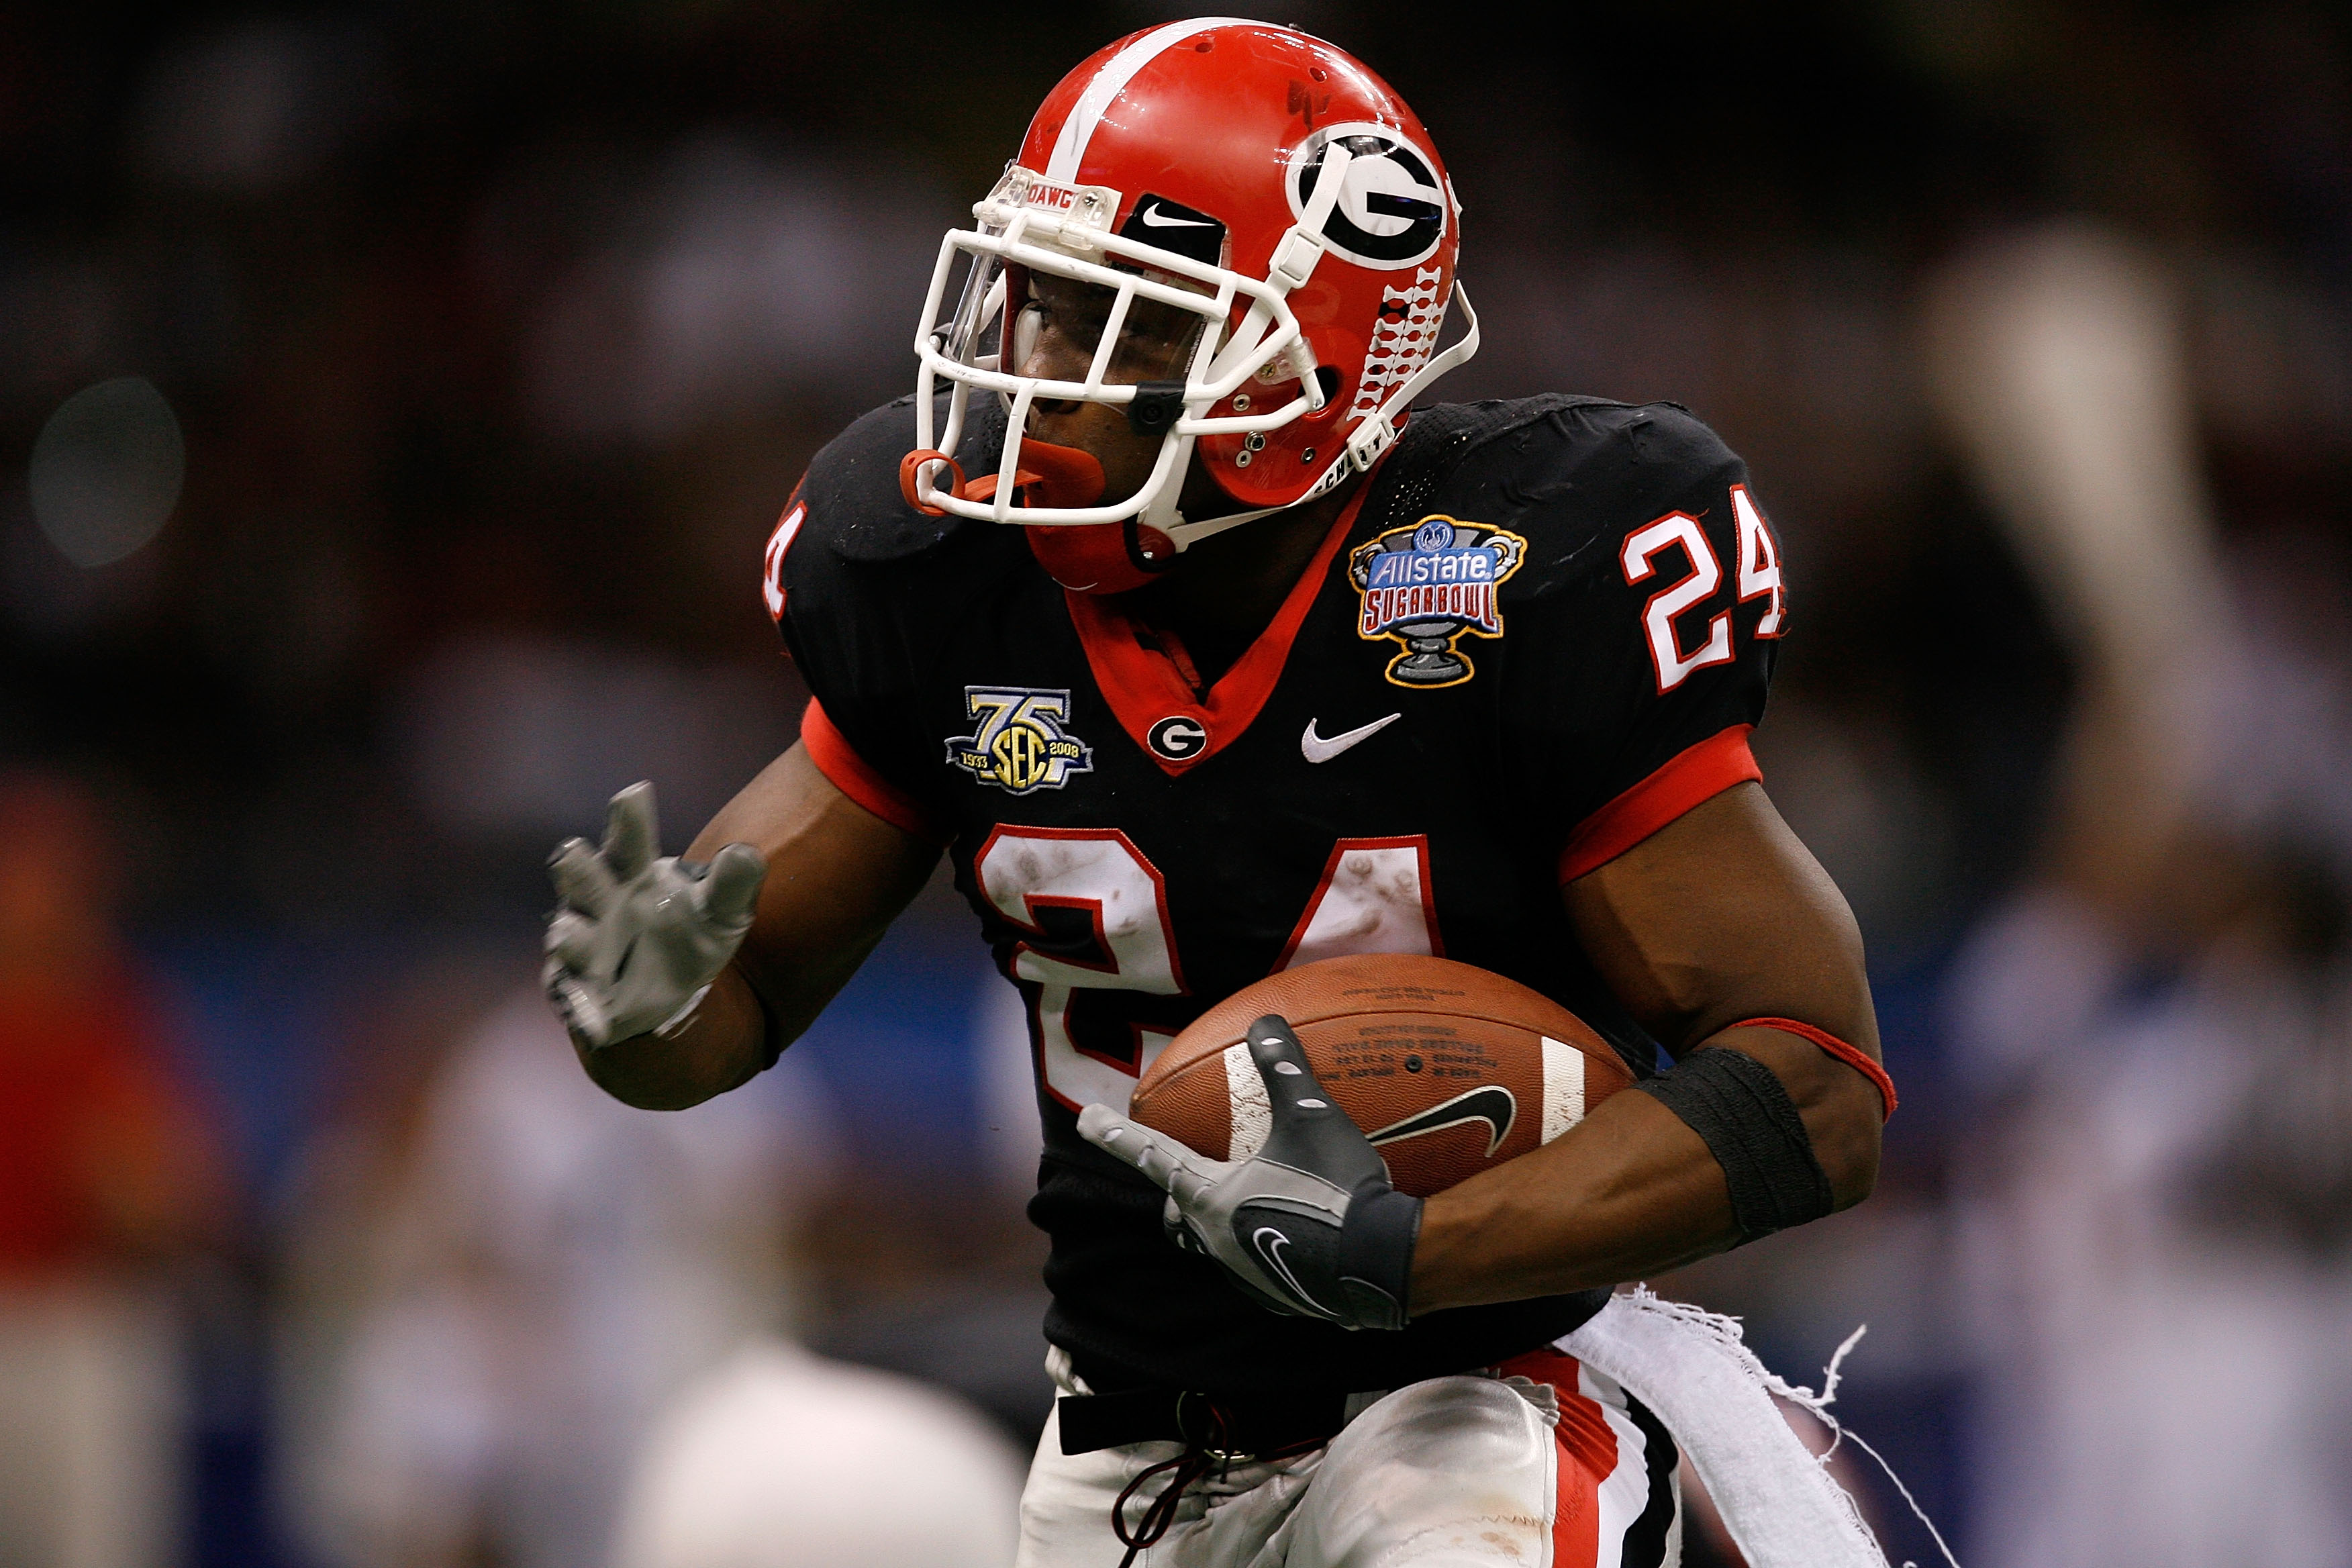 NEW ORLEANS - JANUARY 01:  Knowshon Moreno #24 of the Georgia Bulldogs runs the ball against the Hawai'i Warriors during the Allstate Sugar Bowl at the Louisiana Superdome on January 1, 2008 in New Orleans, Louisiana.  (Photo by Kevin C. Cox/Getty Images)